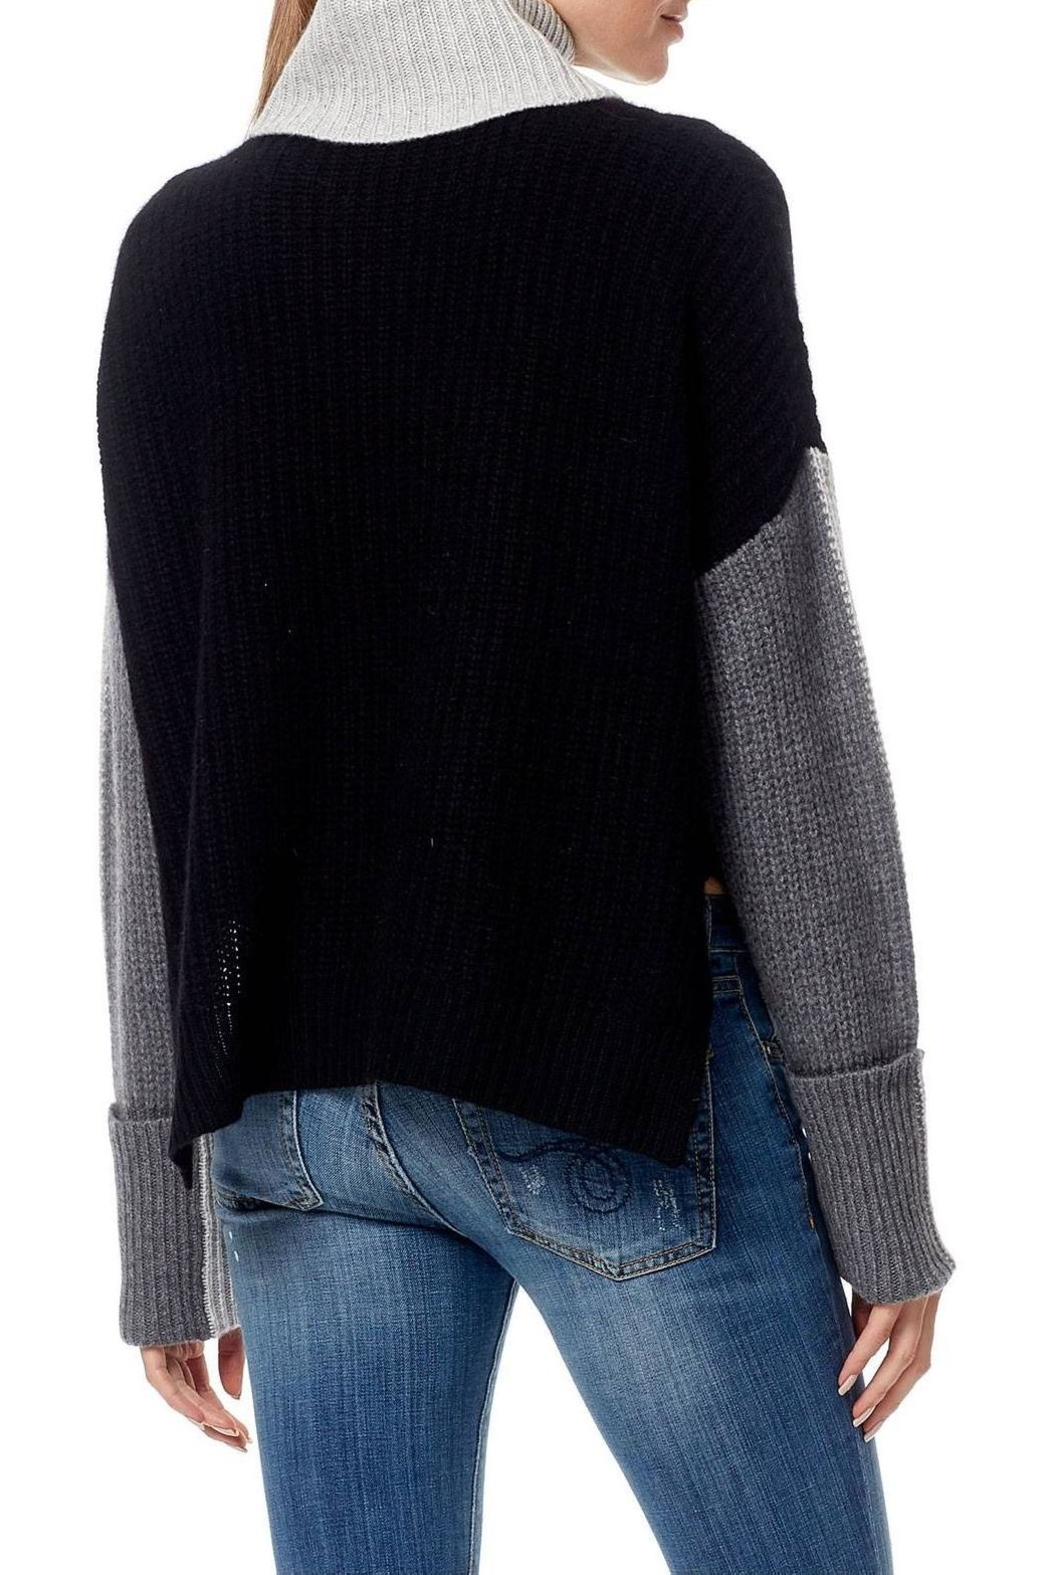 Skull Cashmere Dree Color Block Sweater - Side Cropped Image